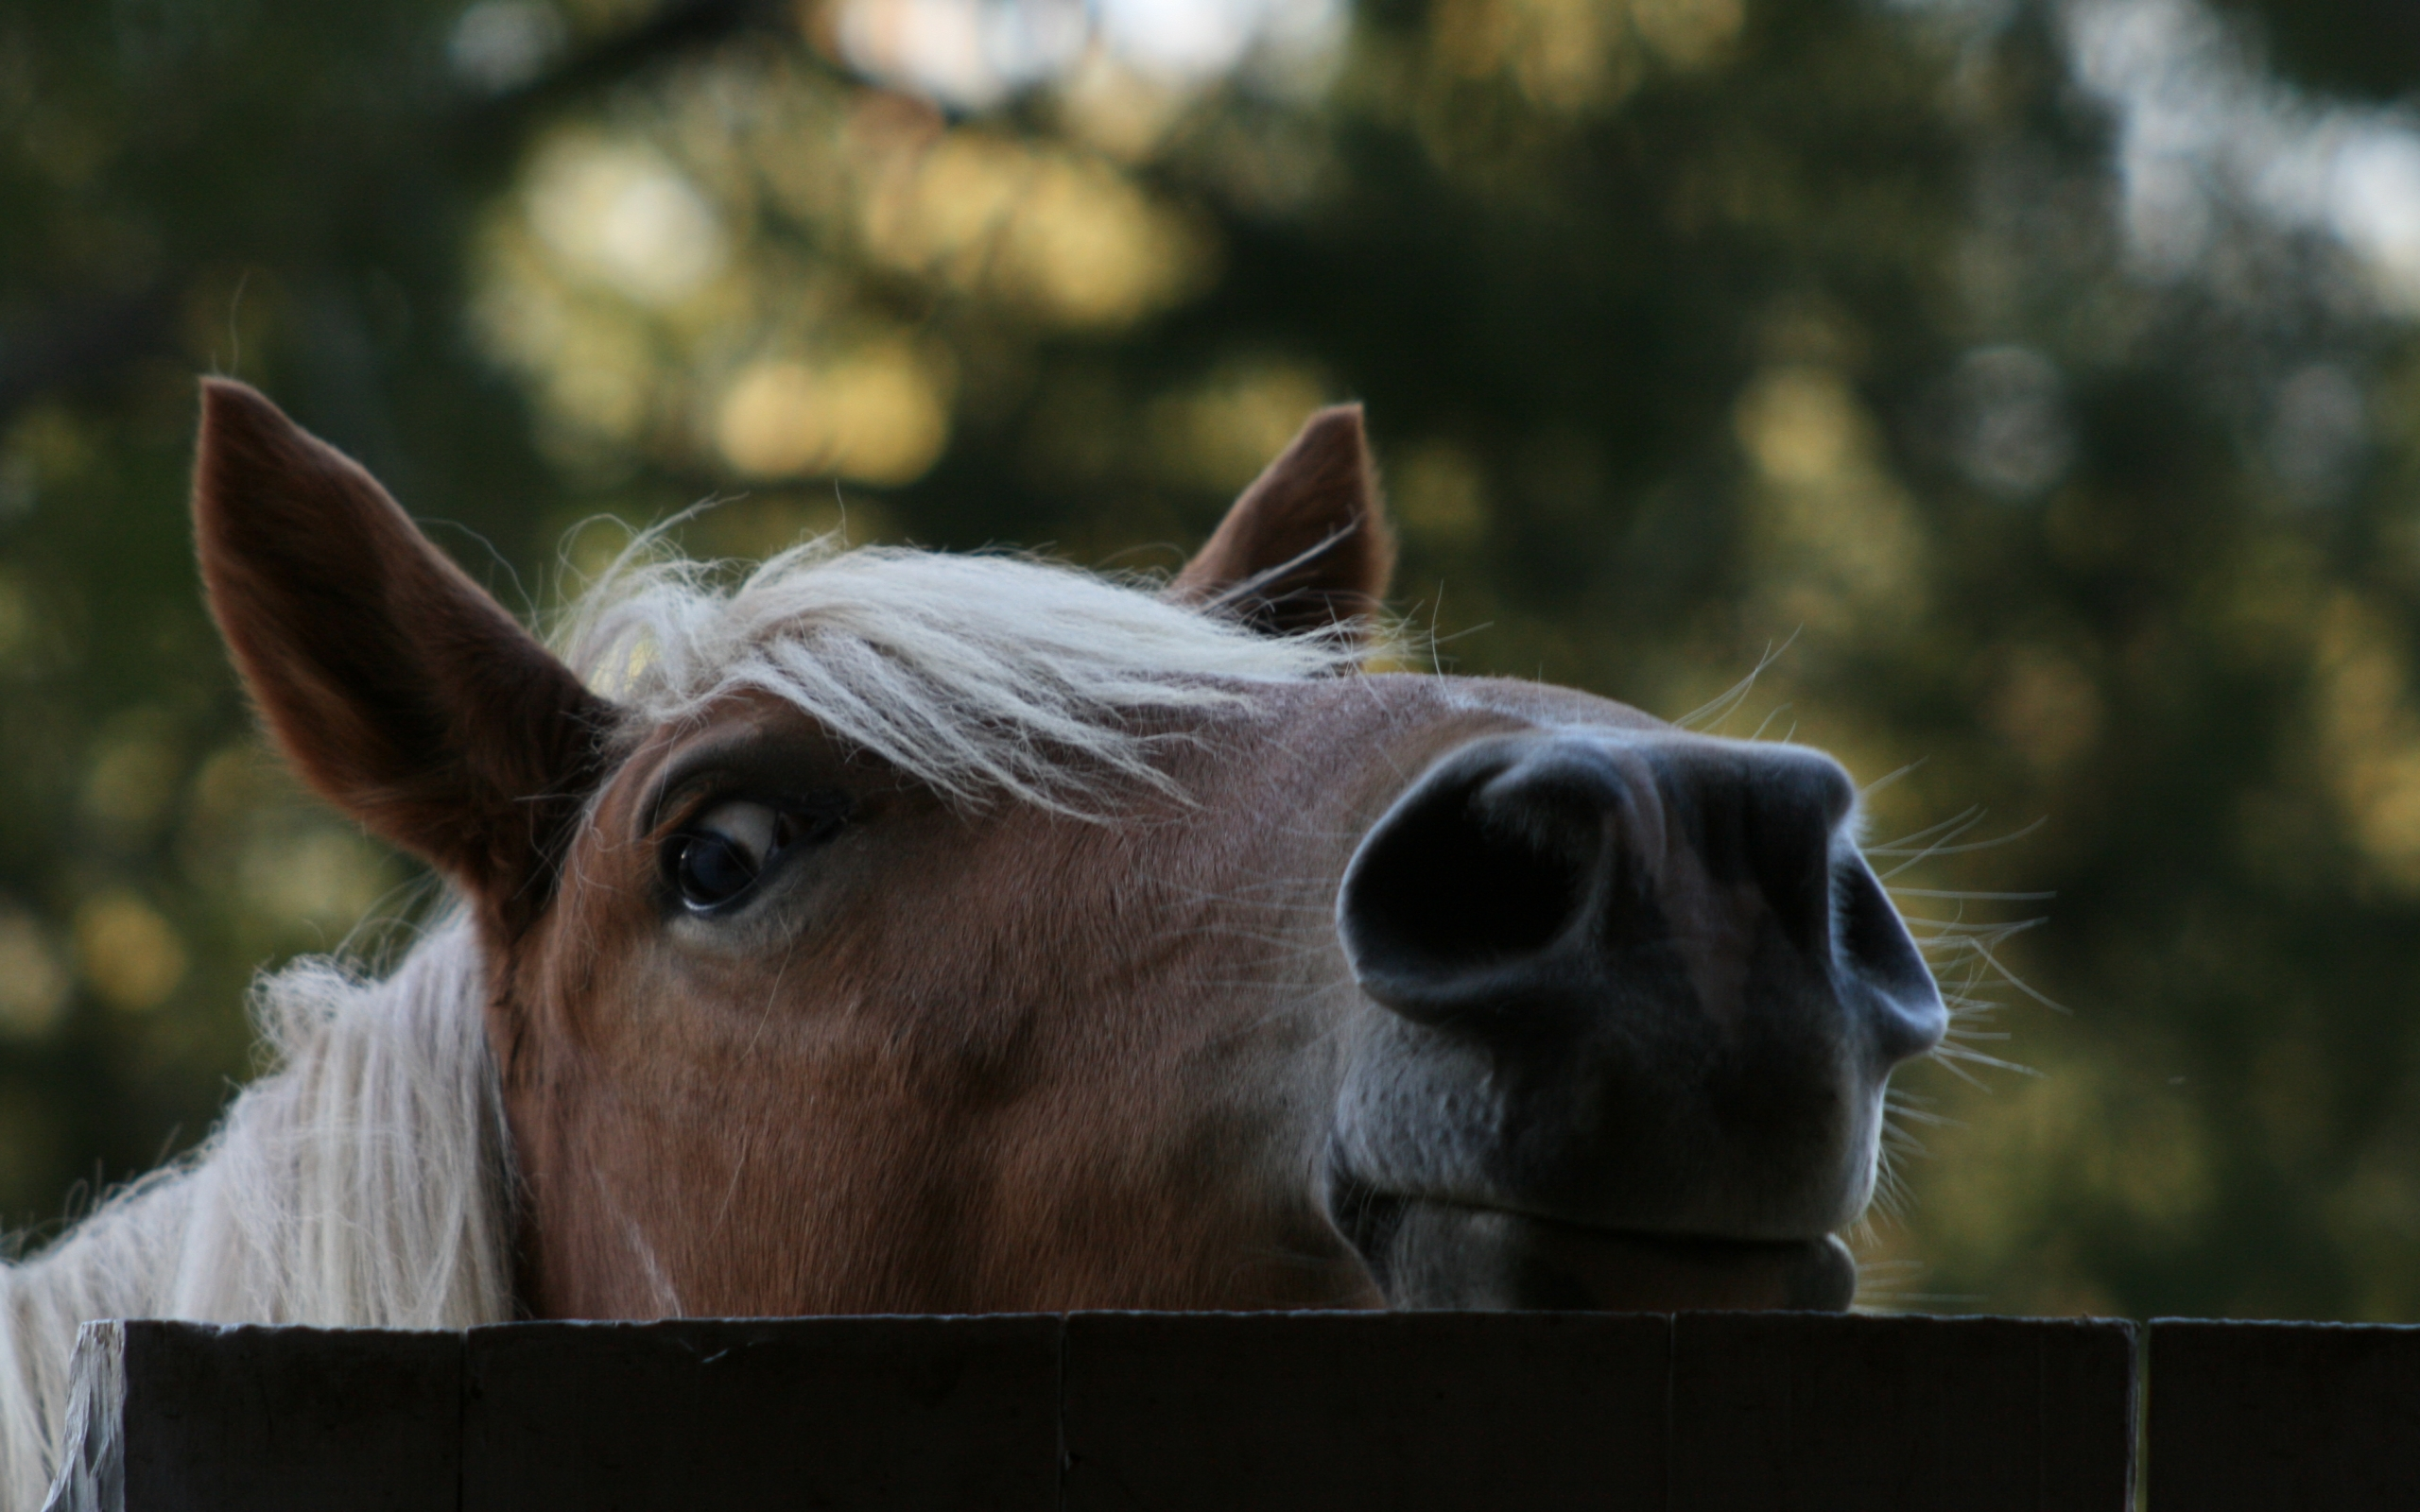 42341 download wallpaper Animals, Horses screensavers and pictures for free